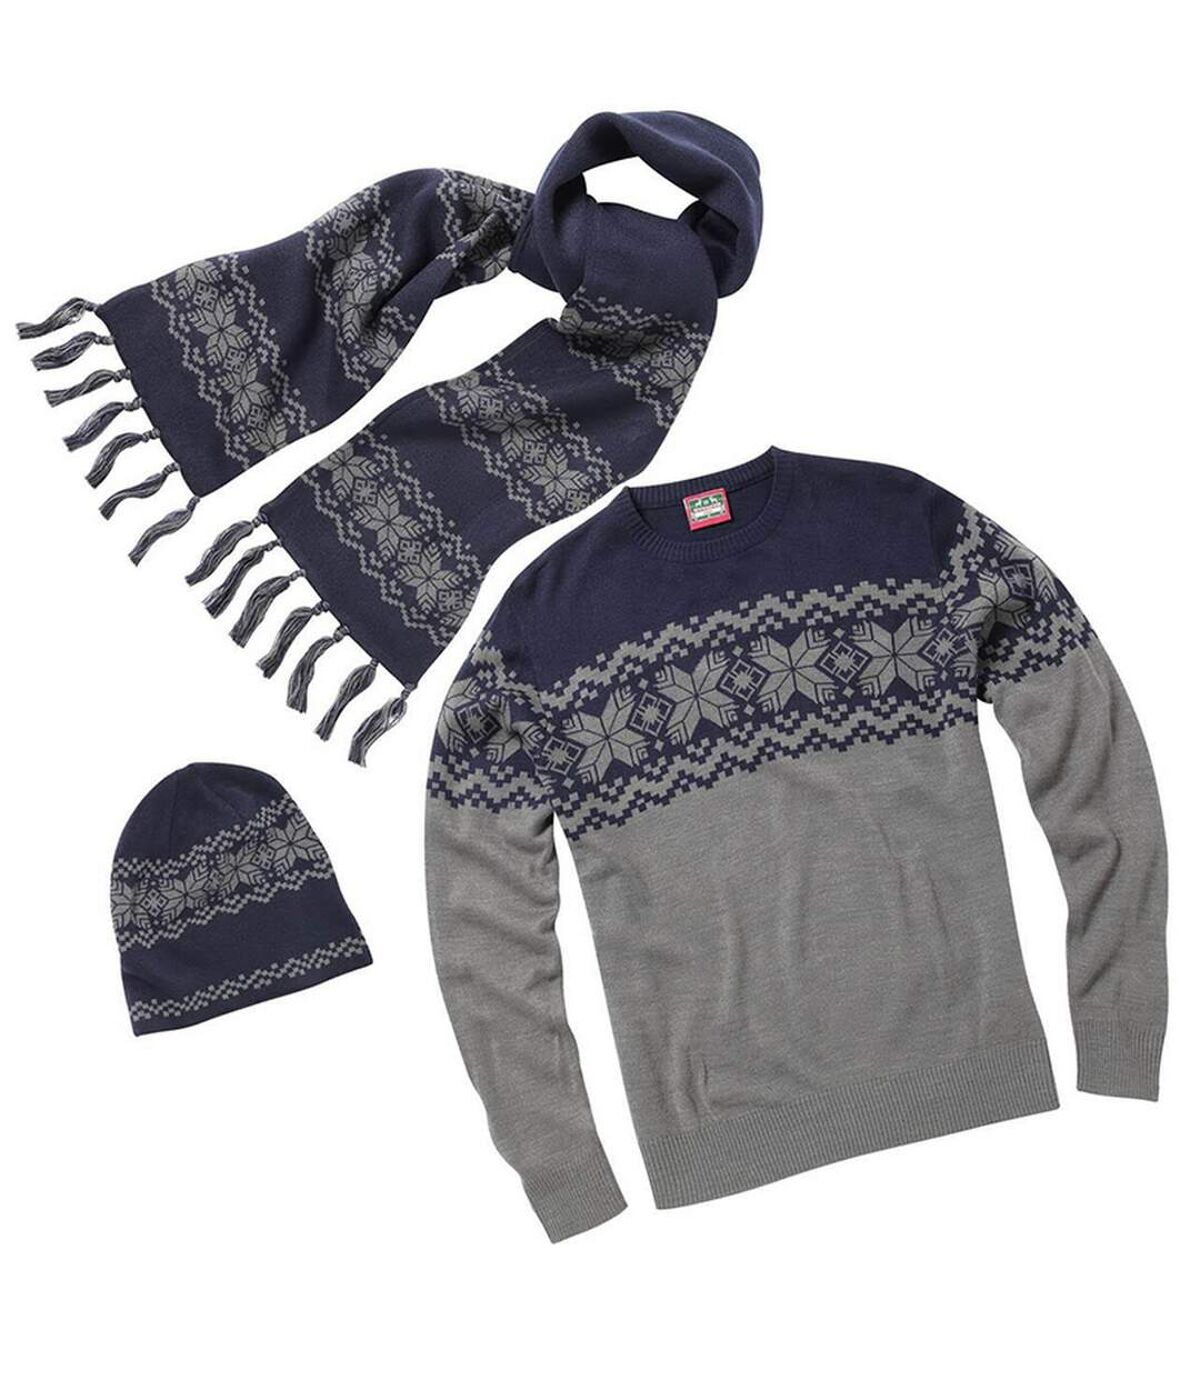 Christmas Shop Mens Traditional Knitted Winter Jumper, Hat & Scarf Set (Grey/Navy) - UTRW5309